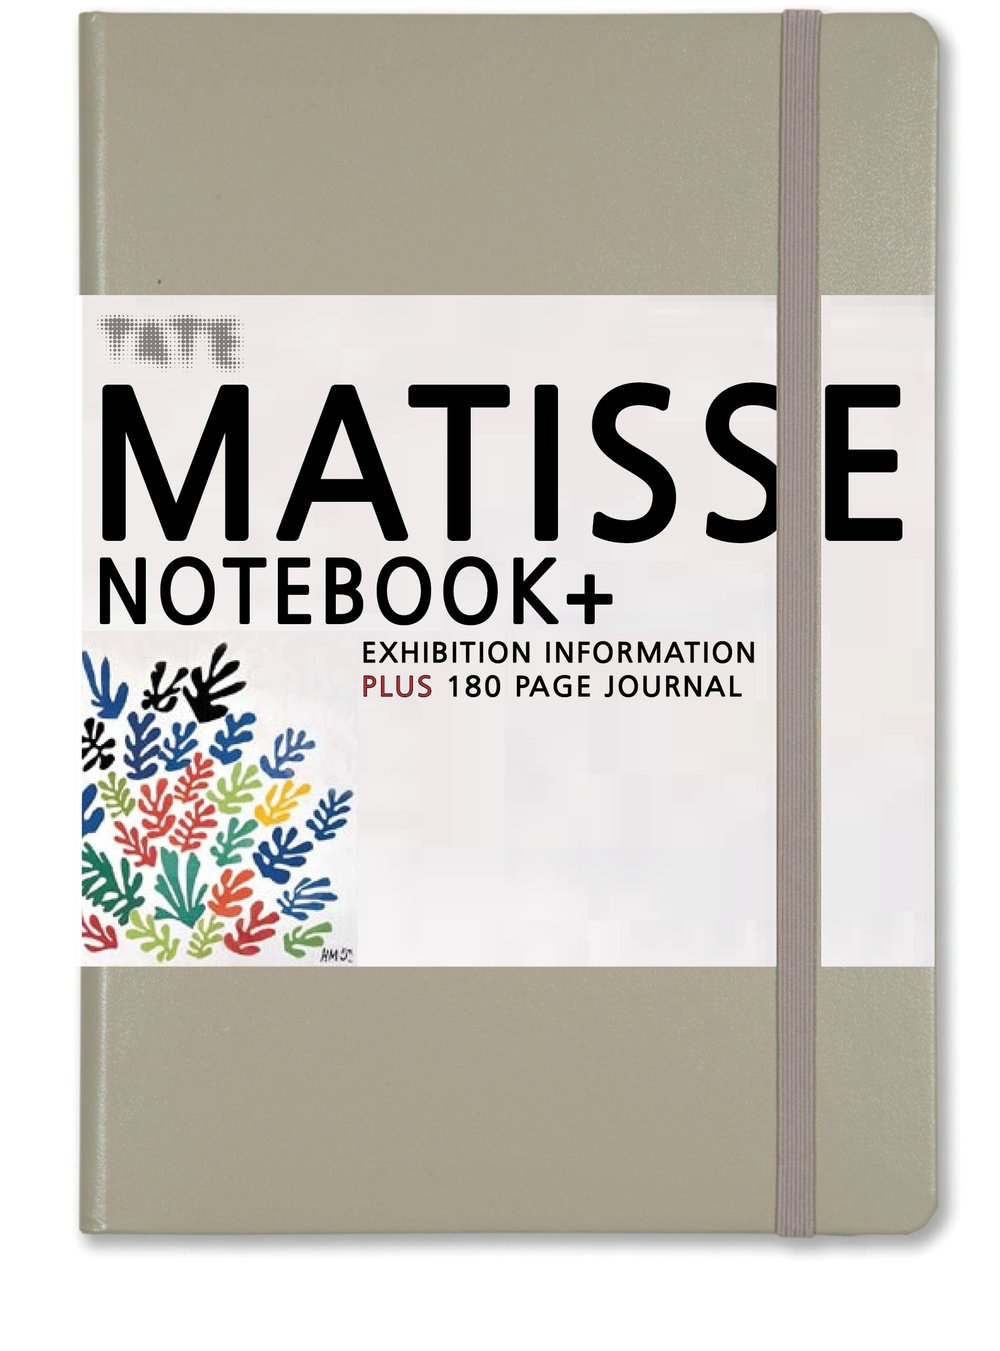 GALLERY NOTEBOOK+  featuring a wraparound guide to Matisse's work plus a 190 pages of plain paper for sketching